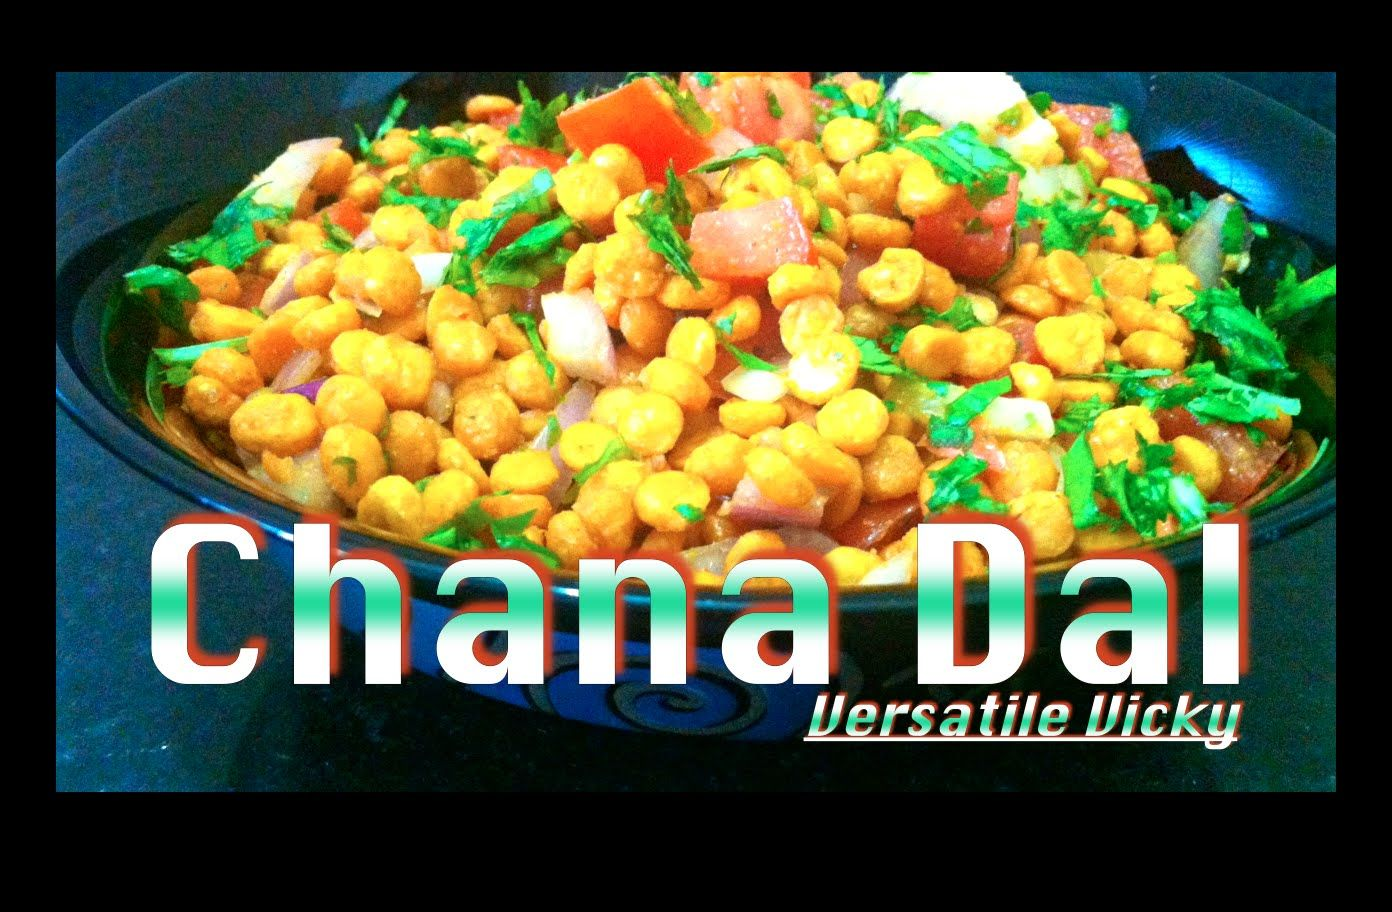 Weight Loss Snack - Low Calorie High Protein Chana Dal / Bengal Gram Sna...